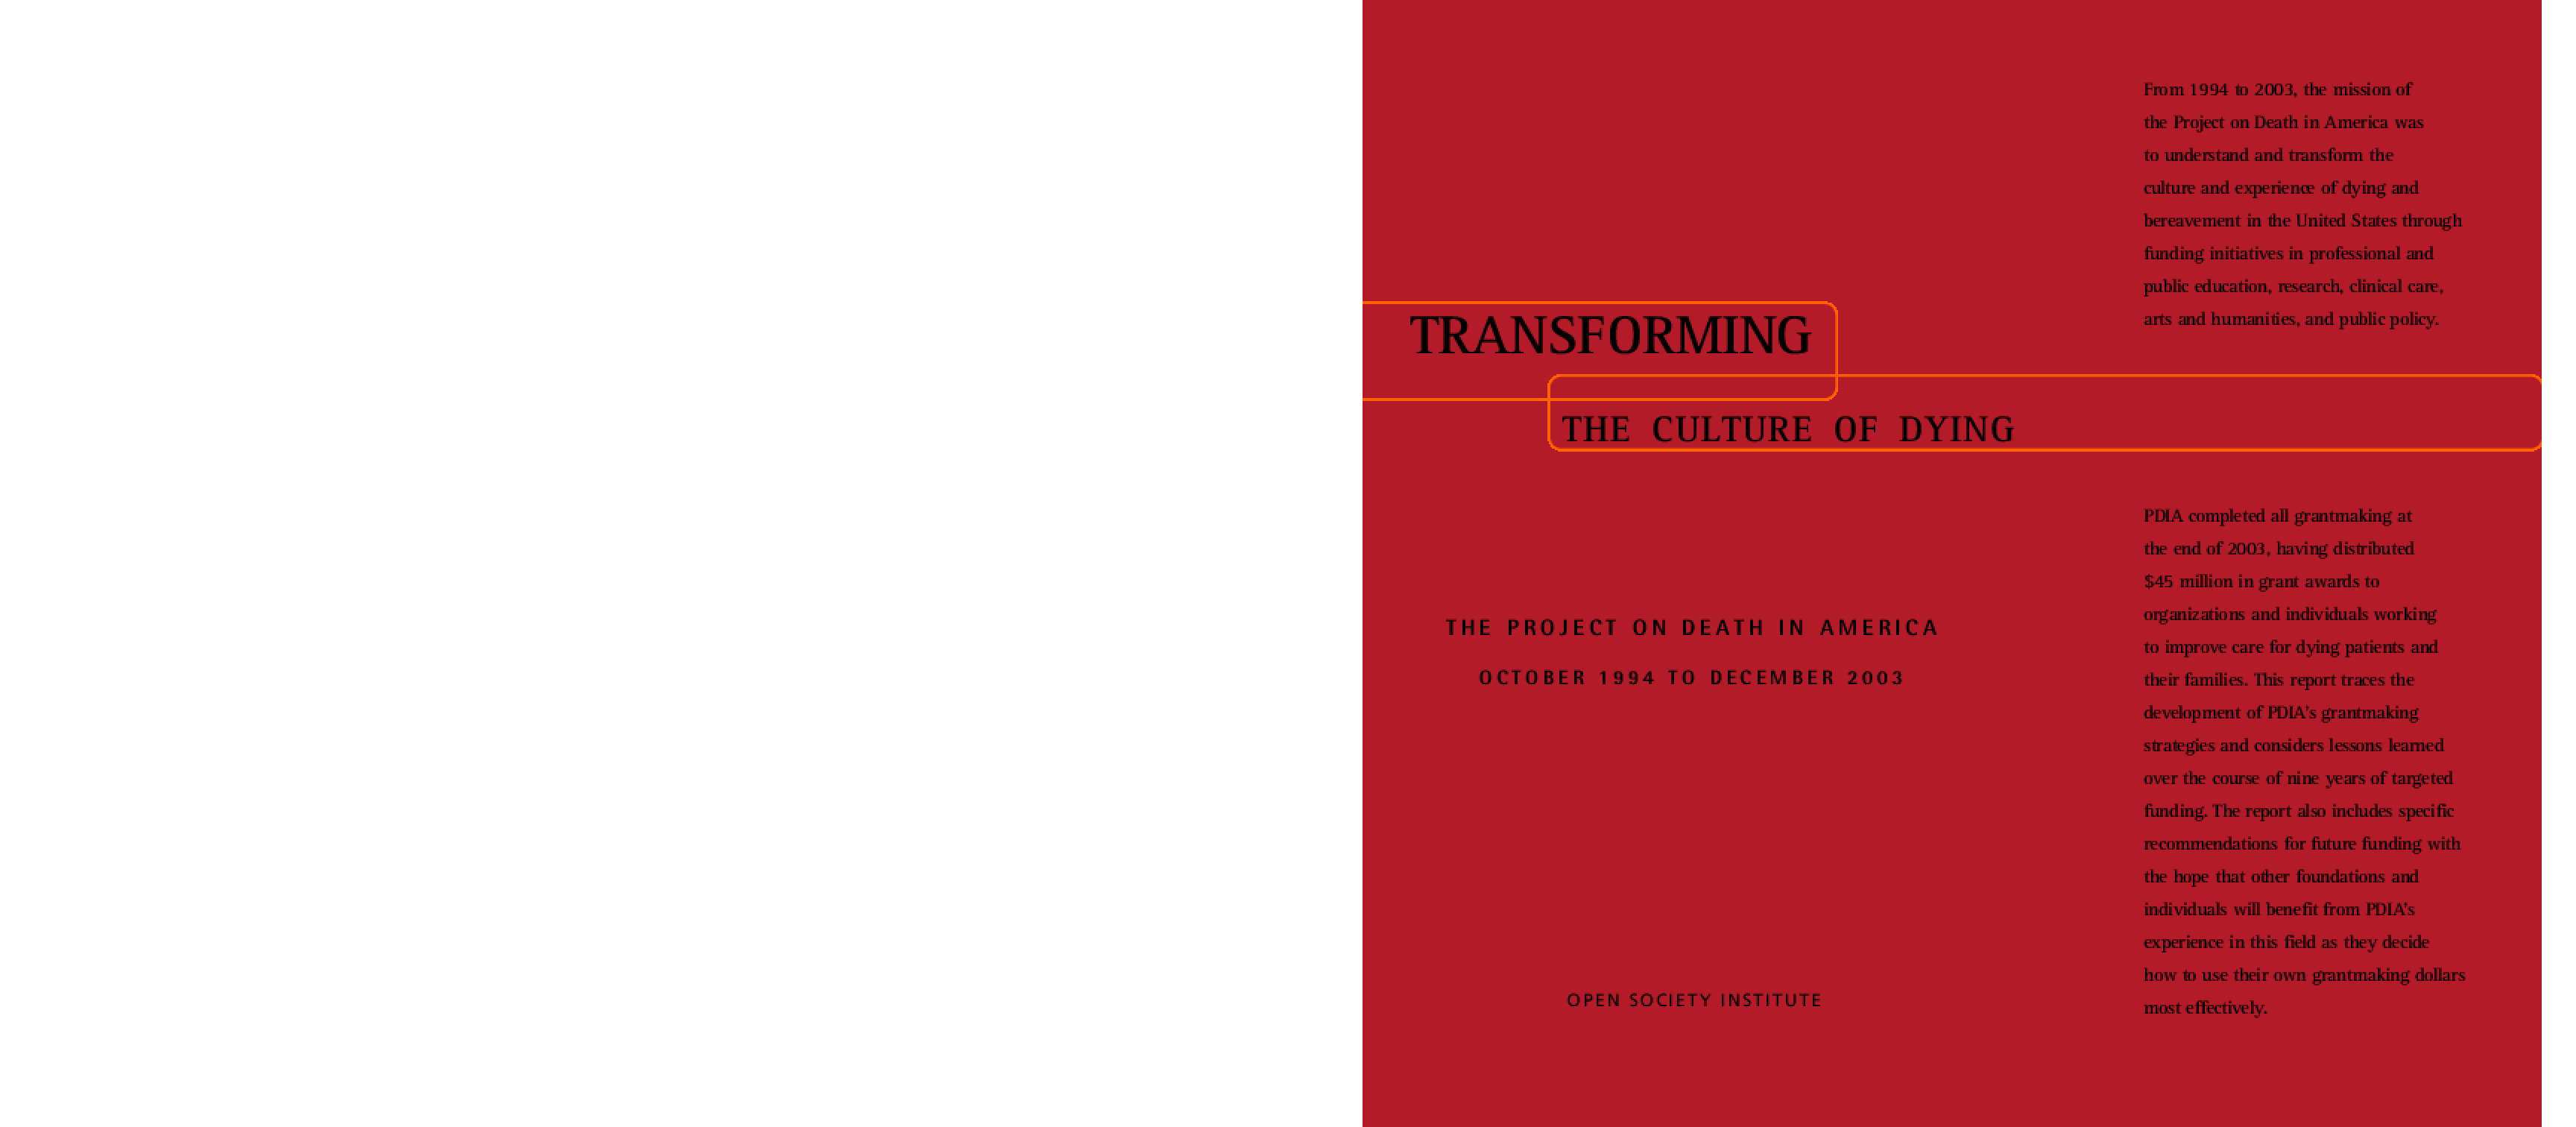 Transforming the Culture of Dying: The Project on Death in America 1994-2003